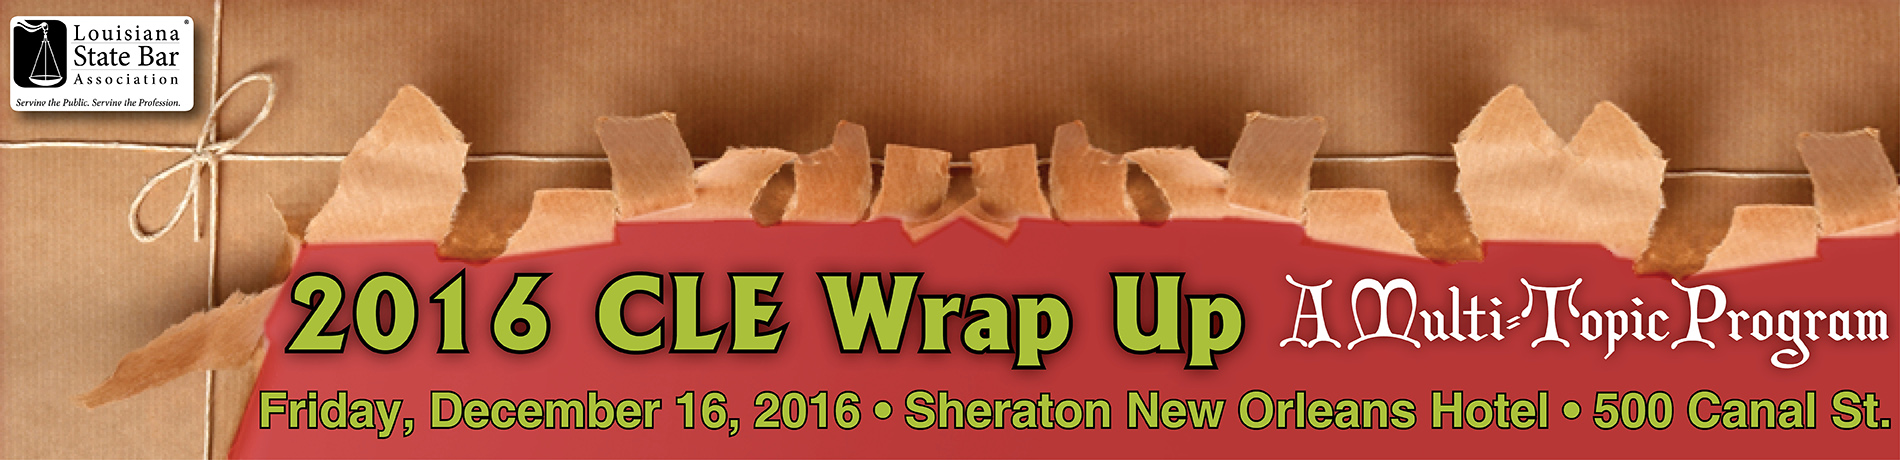 LSBA CLE Wrap Up